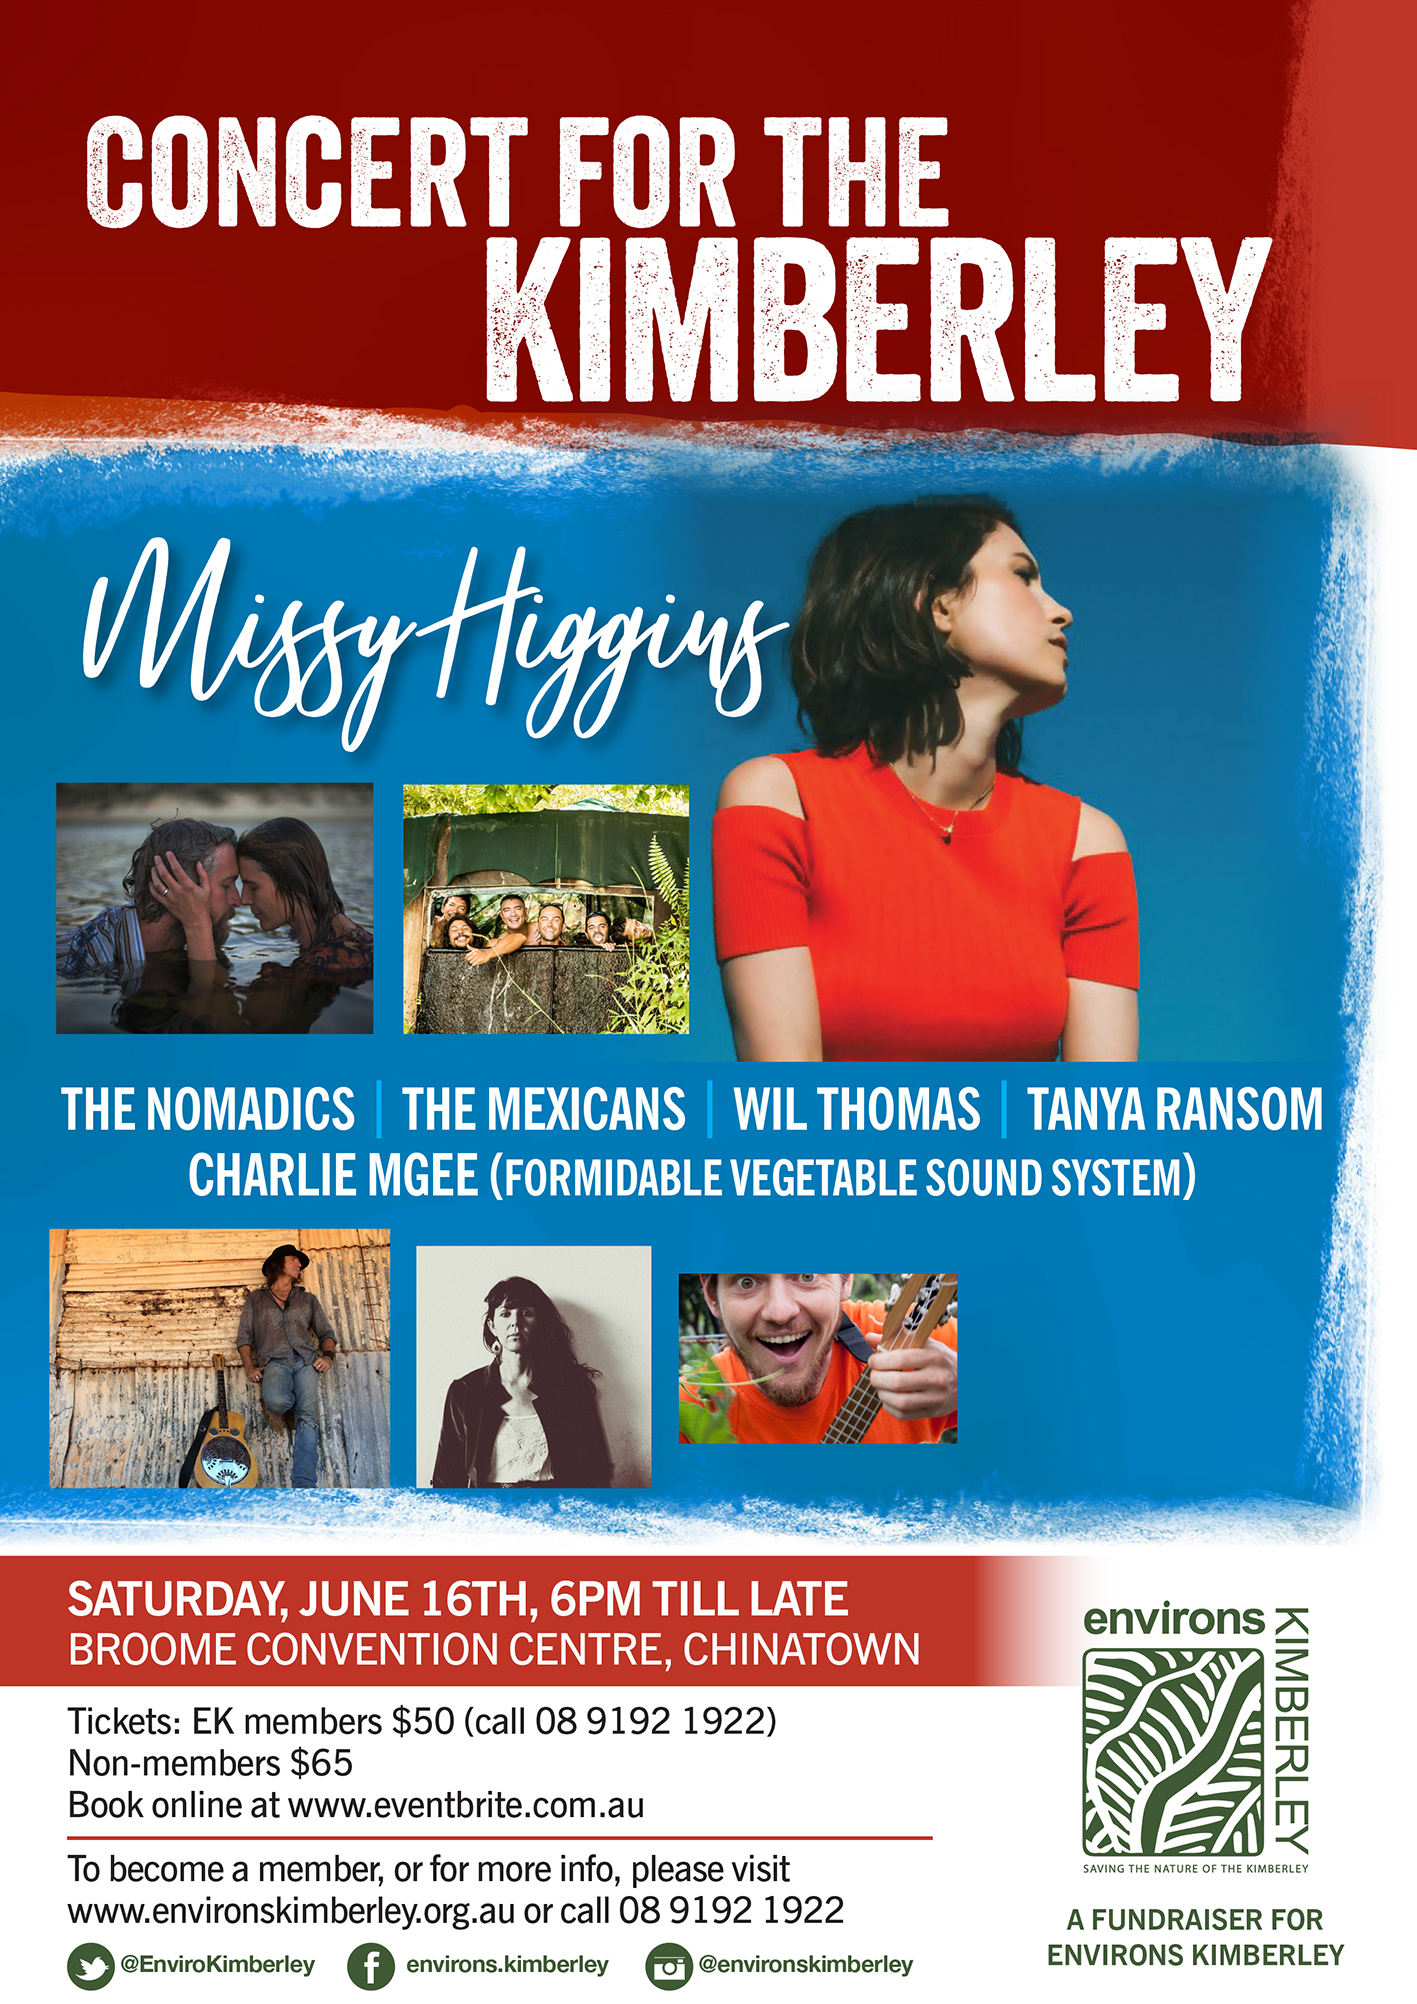 Concert_for_the_Kimberley_2018_with_Missy_Higgins_-_small_format_poster.jpg